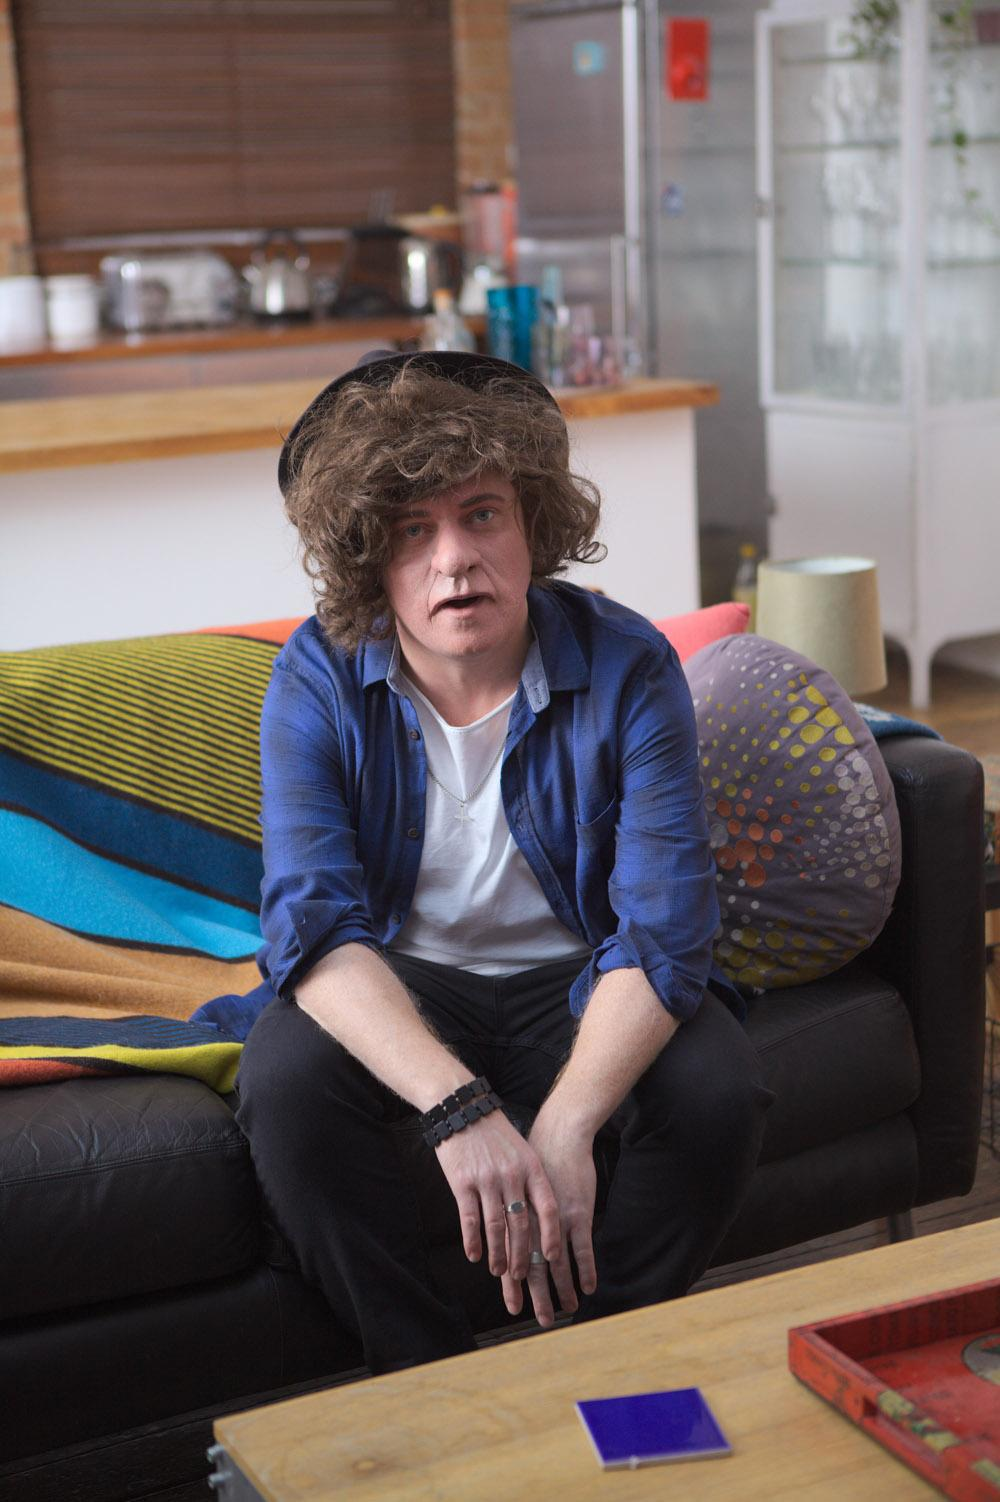 RT @heatworld: He's back on @itv2 & naughtier than ever. Look what @lemontwittor has done to @harrystyles... http://t.co/D1ZKYSMsFQ http://…